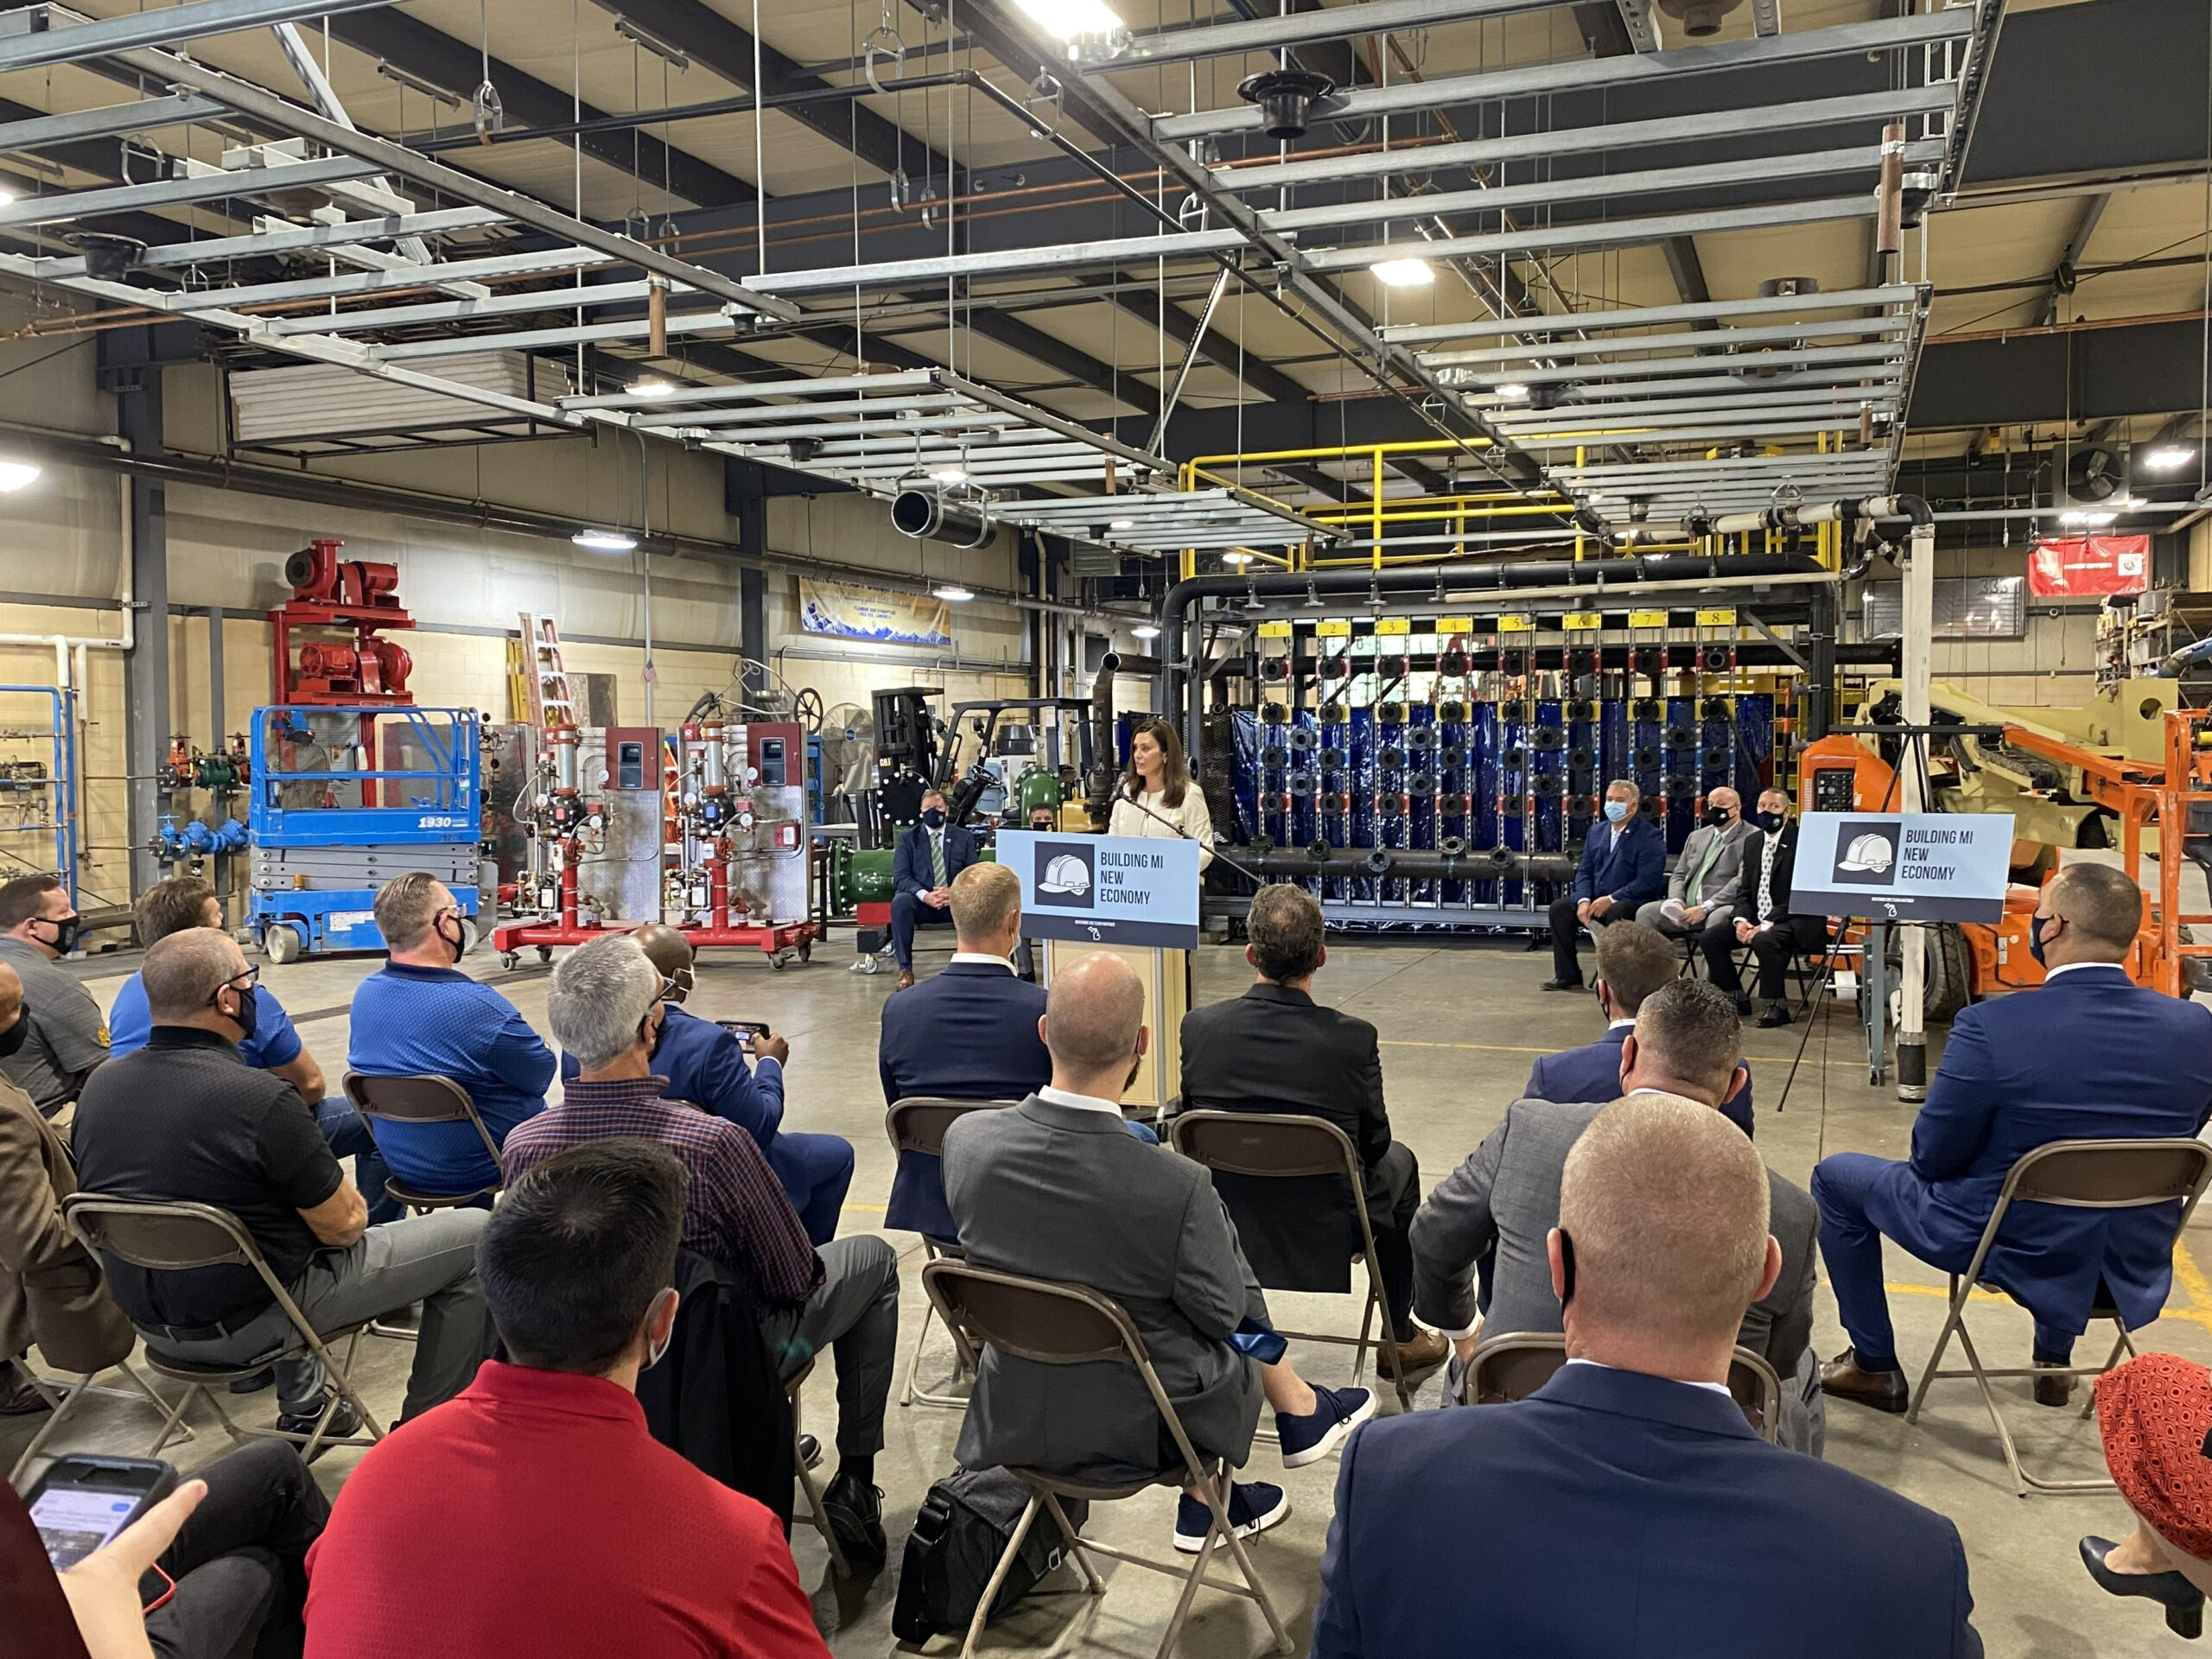 MICHIGAN AFL-CIO PRESIDENT REACTS TO GOVERNOR GRETCHEN WHITMER REINSTATING PREVAILING WAGE